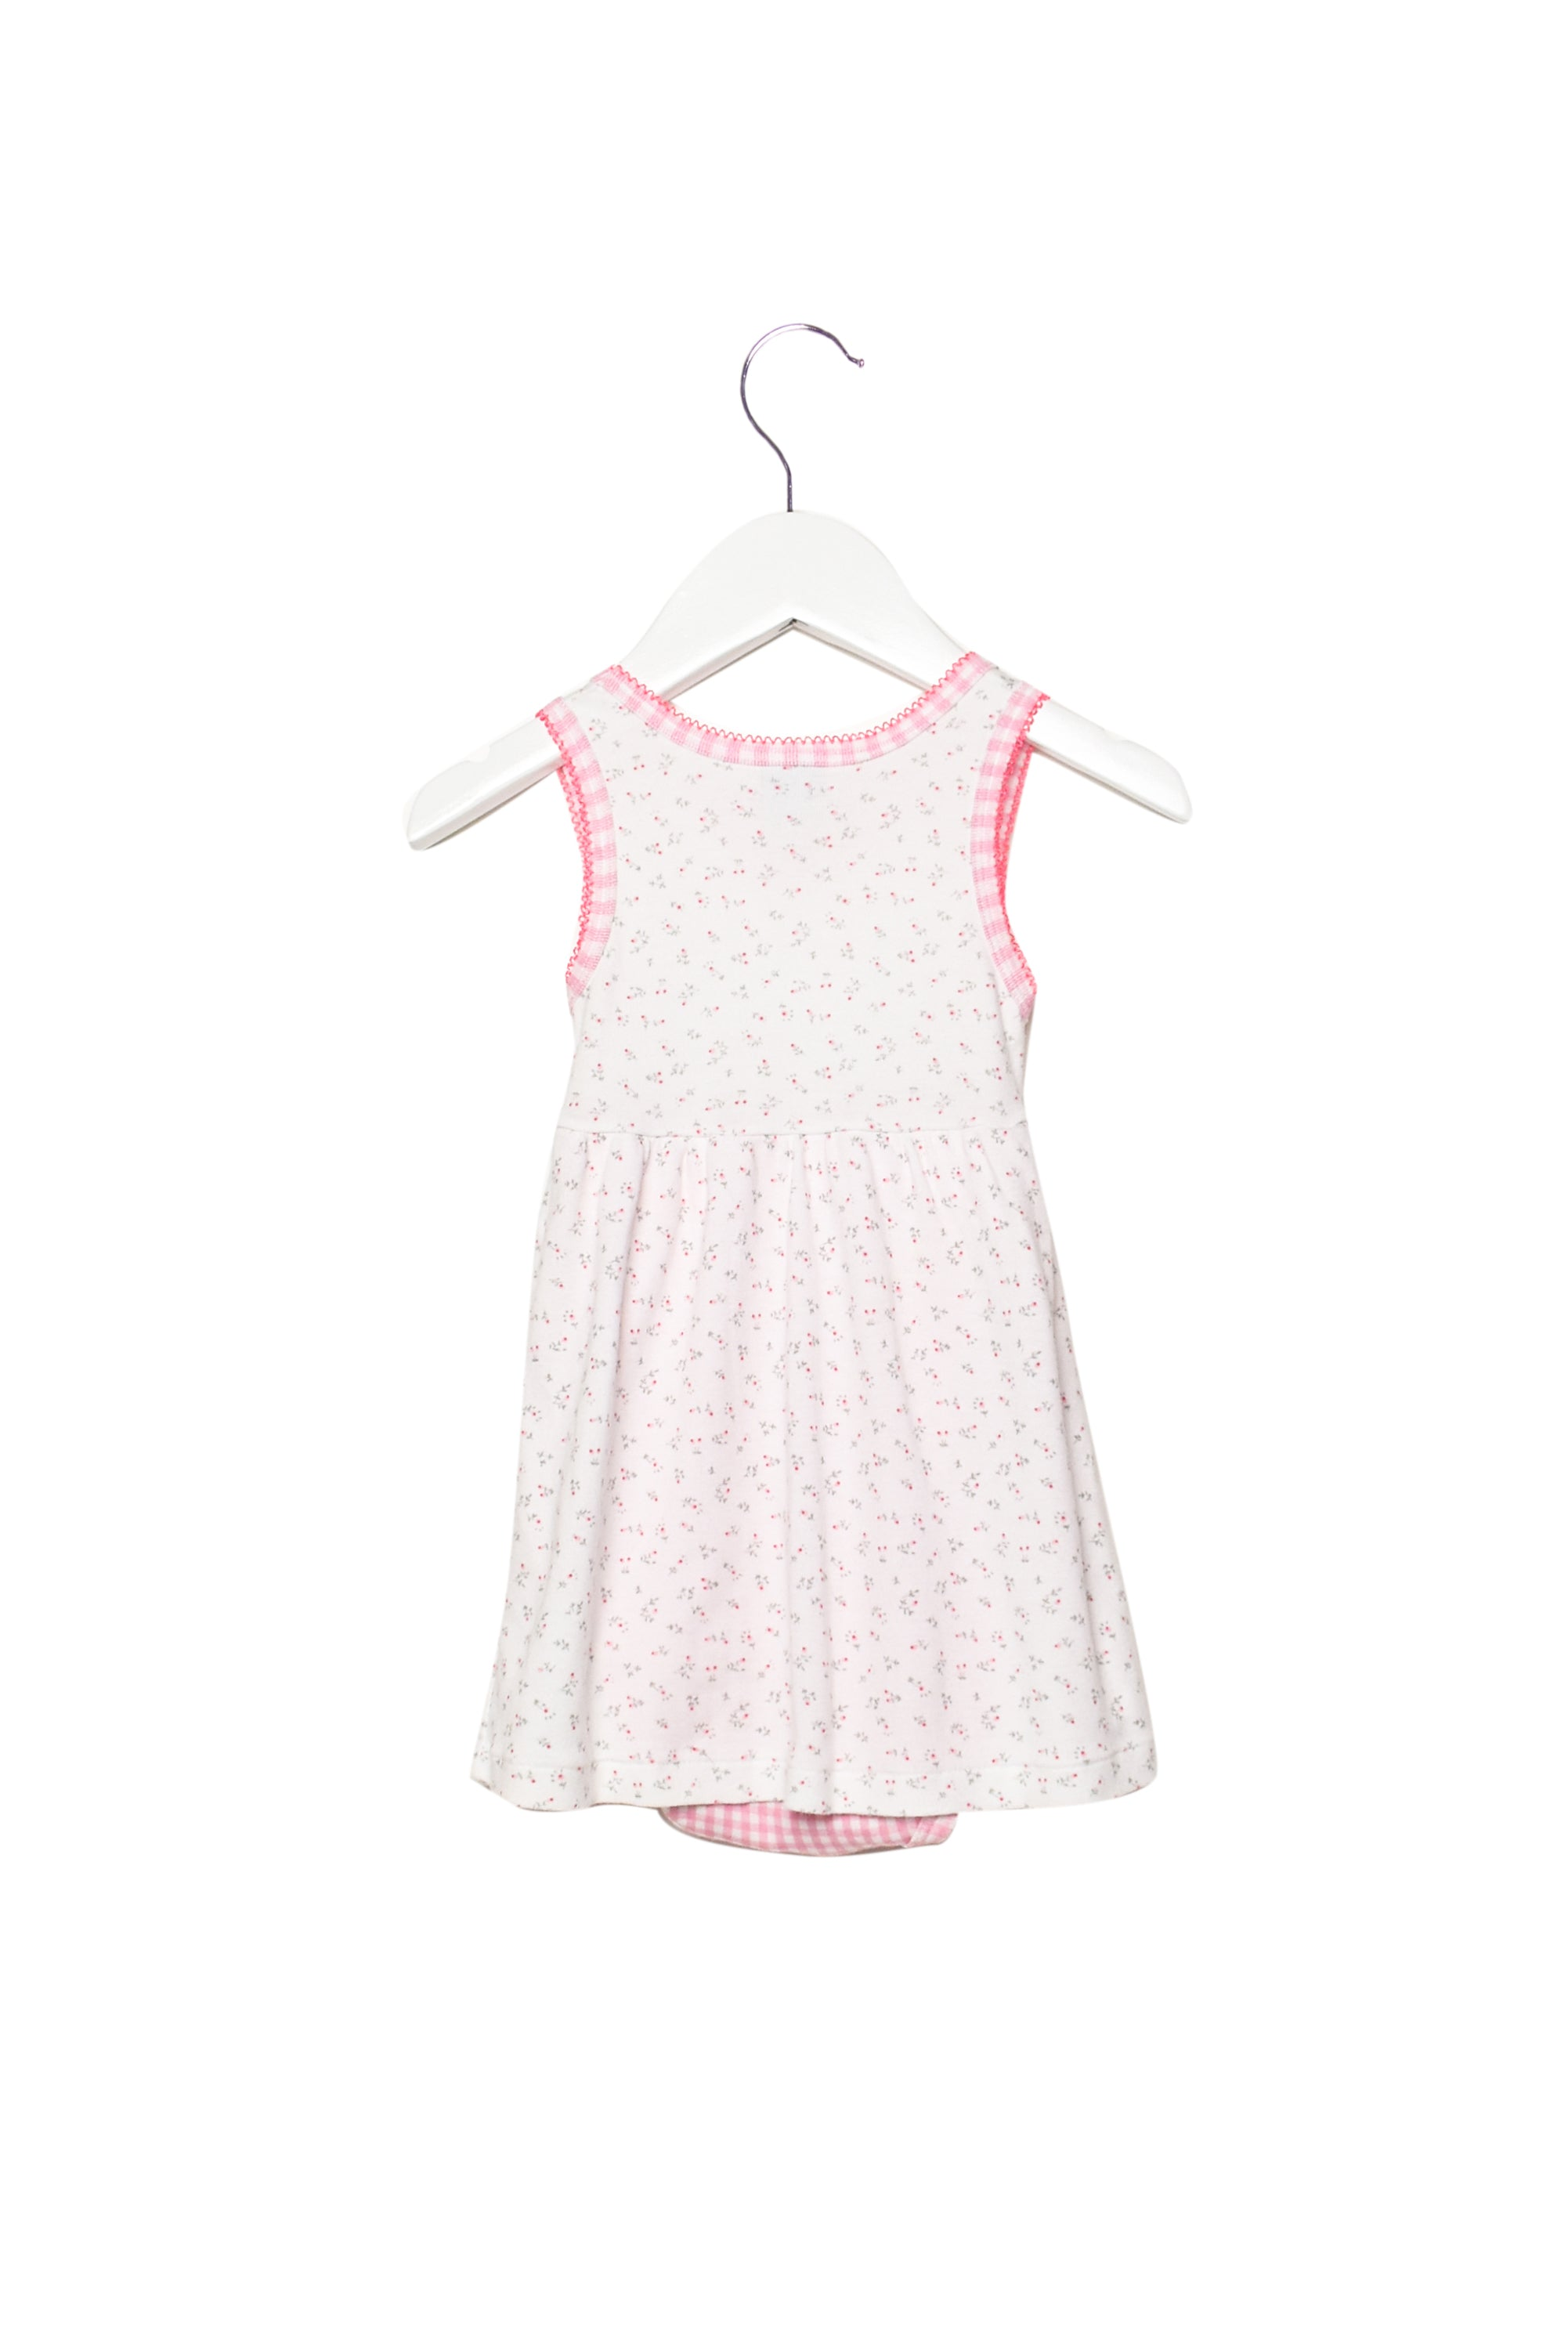 10012051 Petit Bateau Kids~Romper Dress 24M at Retykle